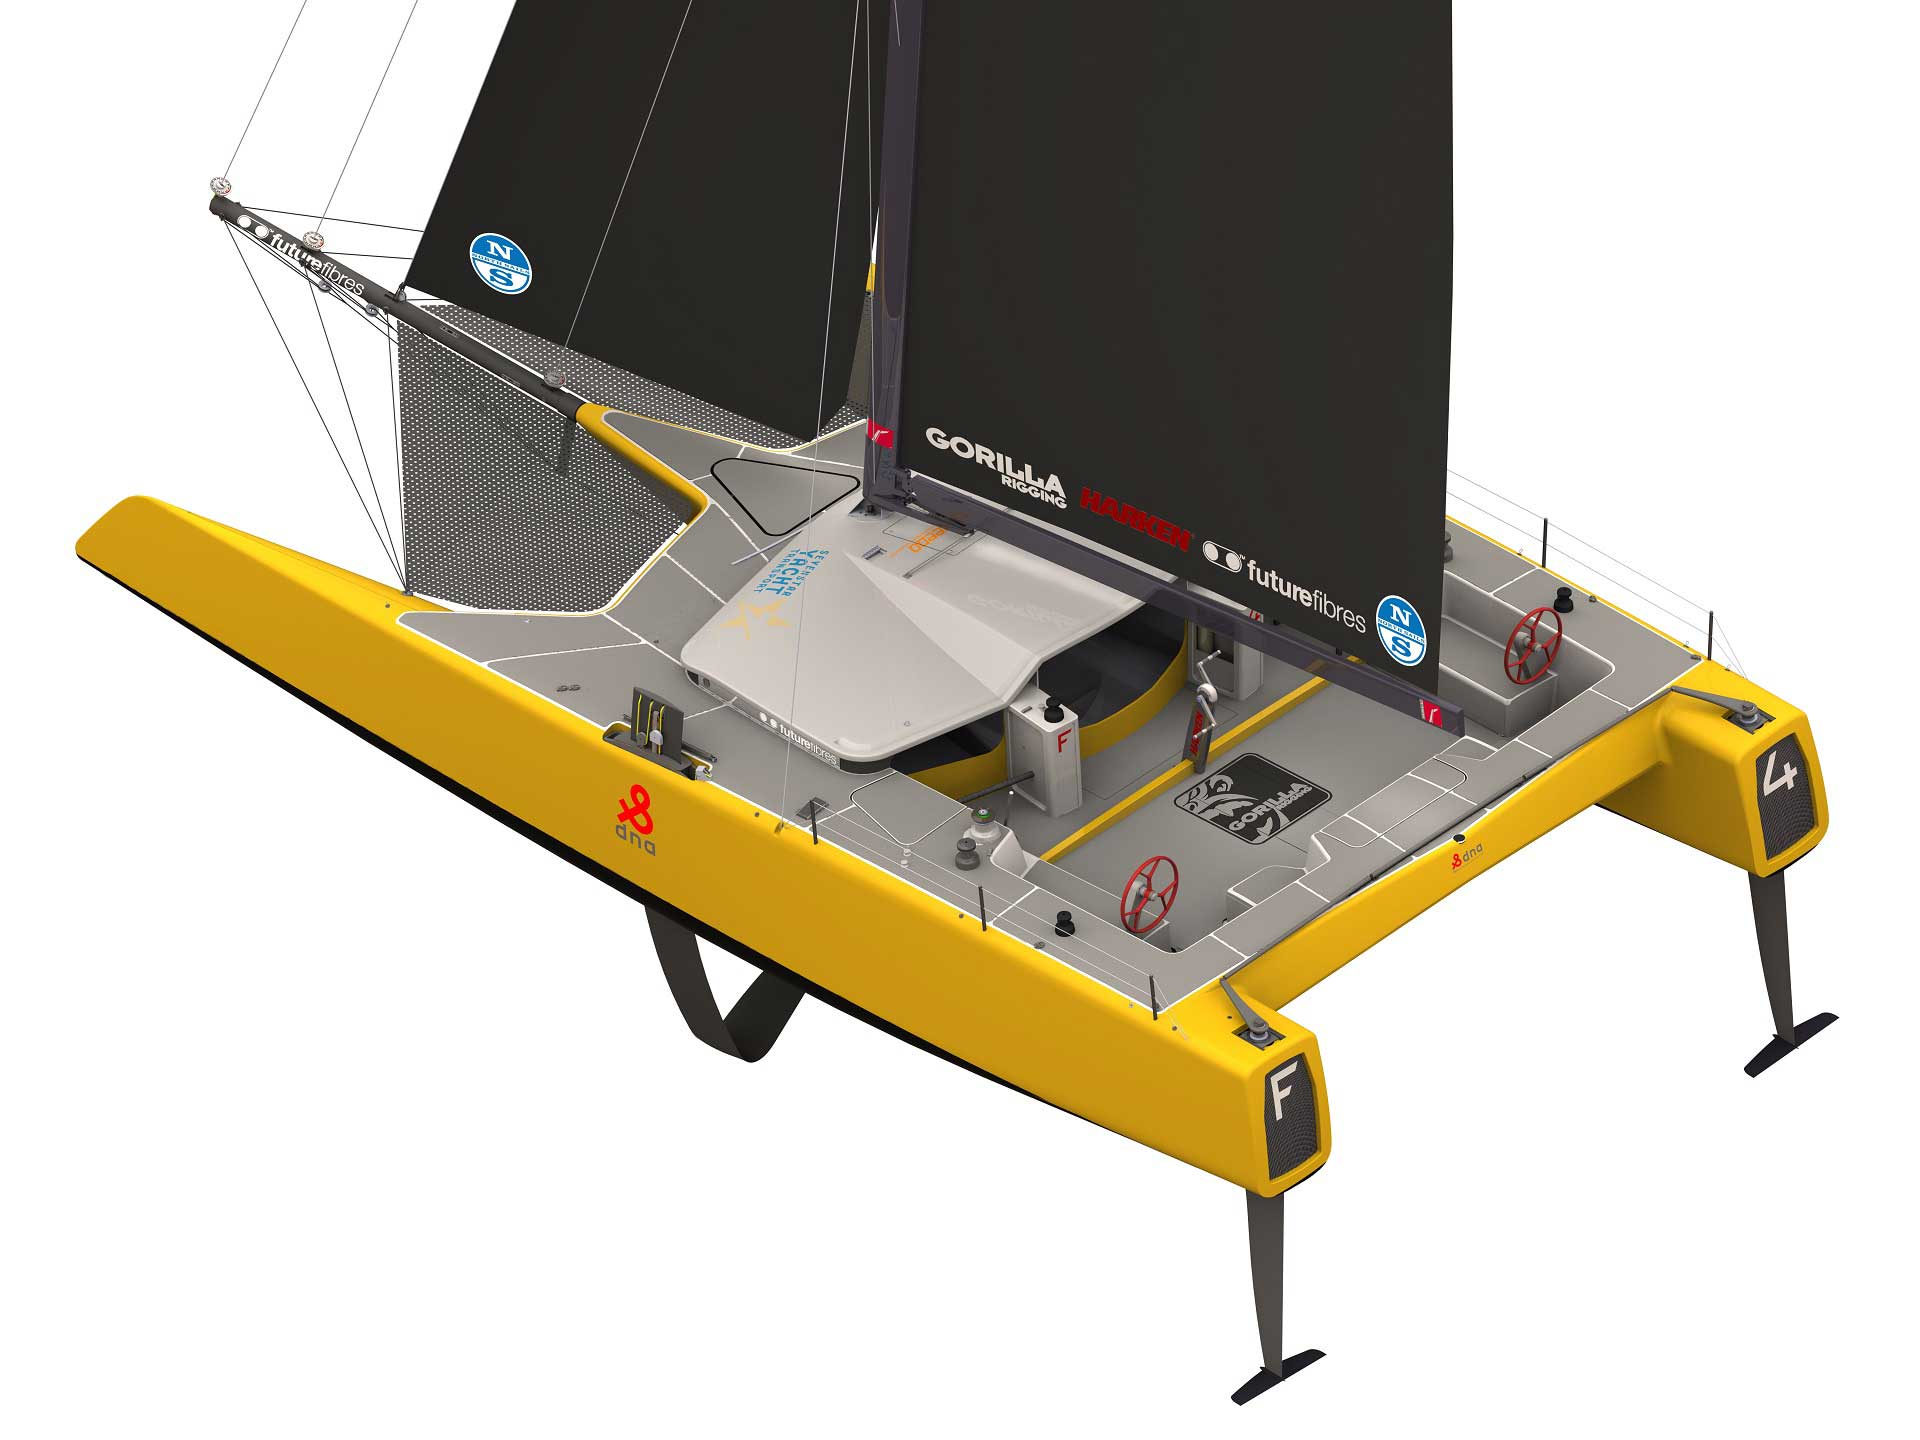 DNA-F4-foiling-catamaran-renderings-20160720-6